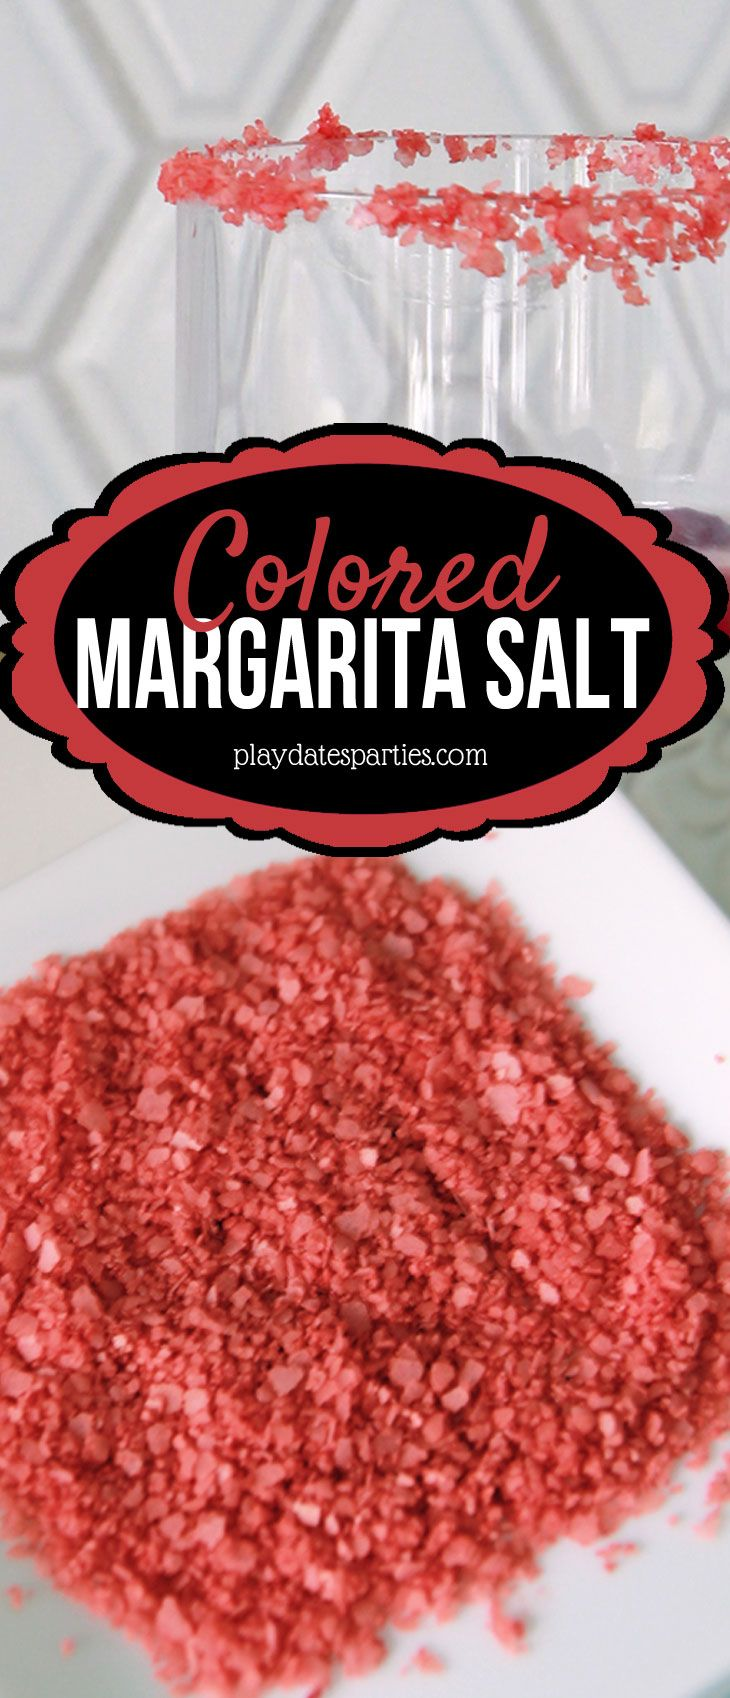 Add some color to your fiesta! Learn how to make colored margarita salt and 7 other easy ways to garnish your cocktails that will take your party drinks to the next level!  https://playdatesparties.com/how-to-make-colored-margarita-salt-ways-to-garnish-mixed-drinks/